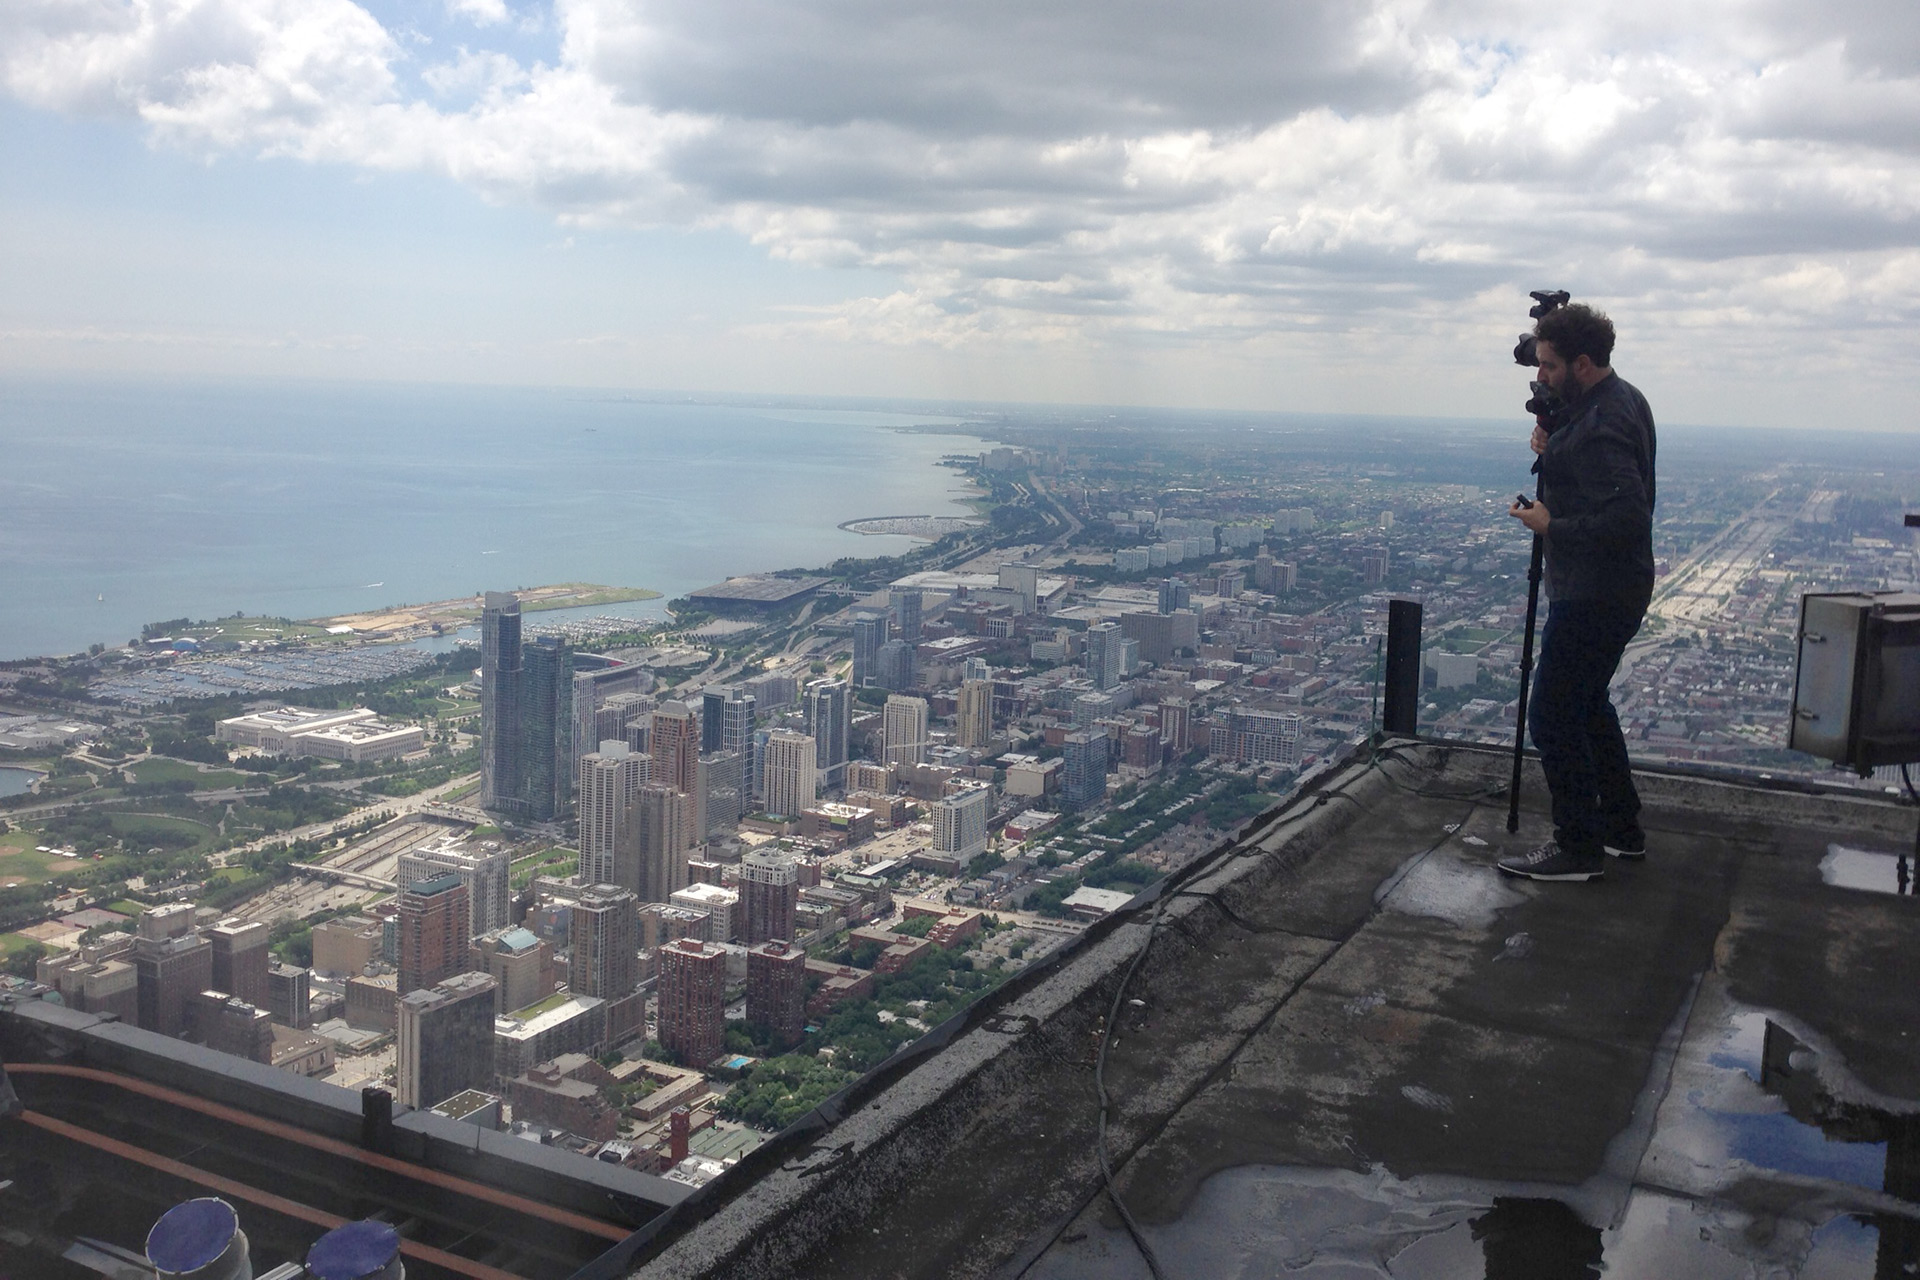 On Top of the Sears Tower